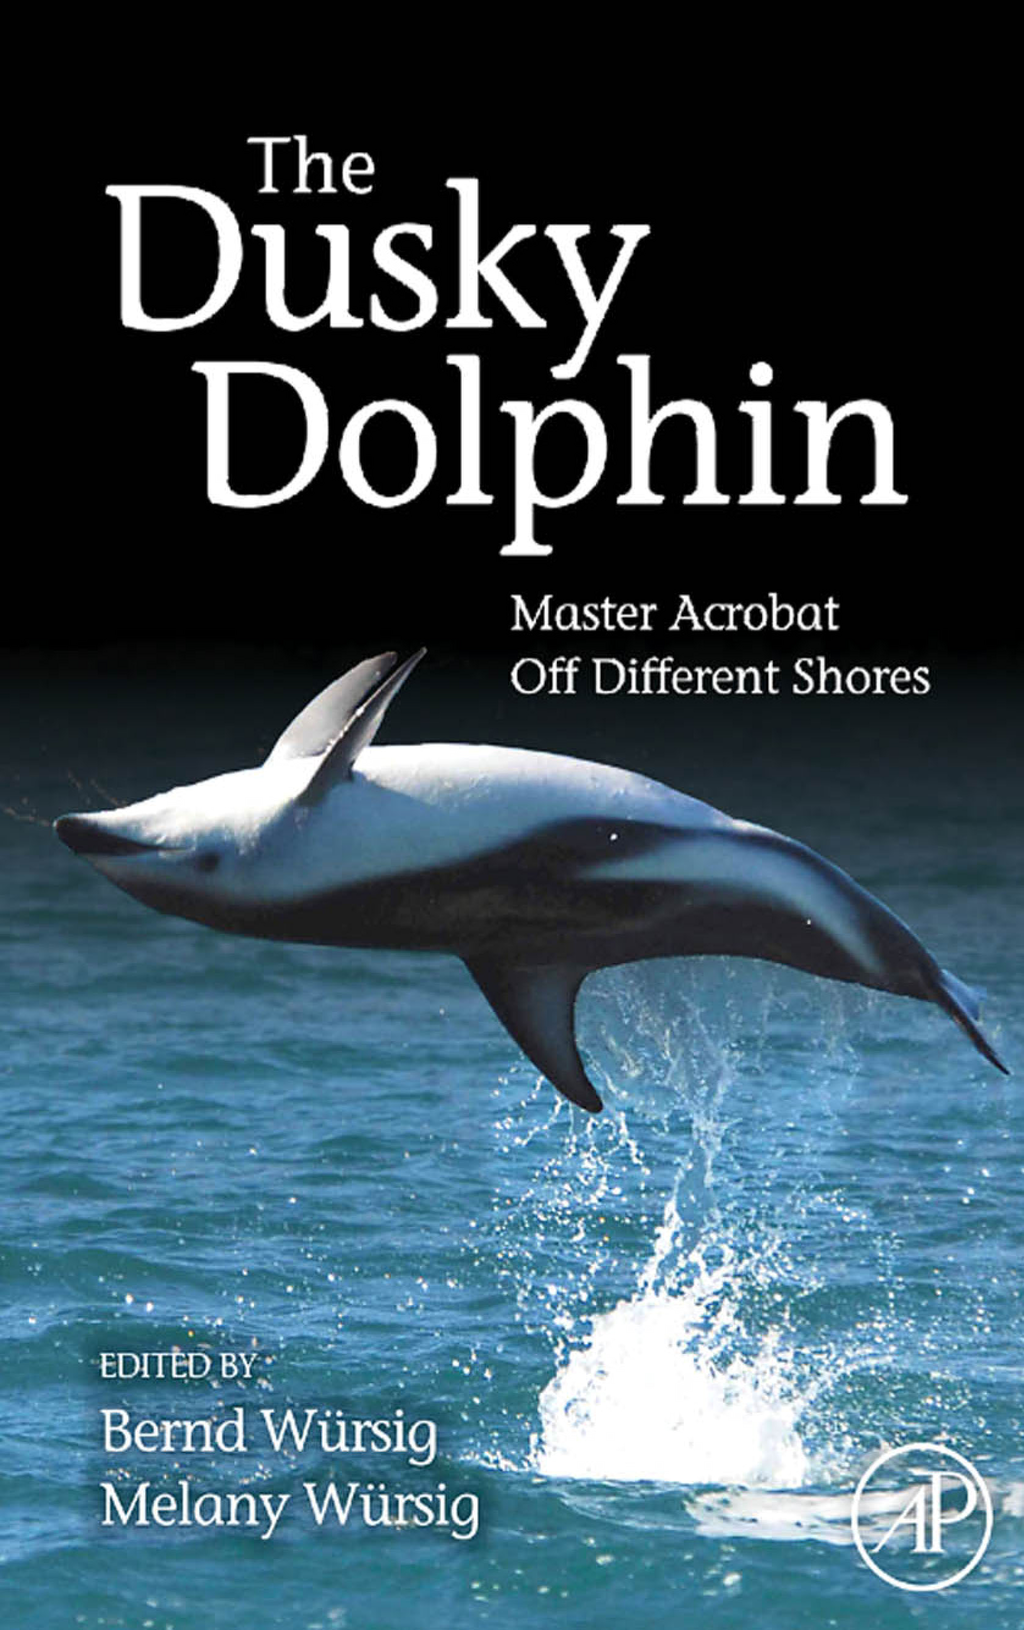 The Dusky Dolphin Master Acrobat Off Different Shores